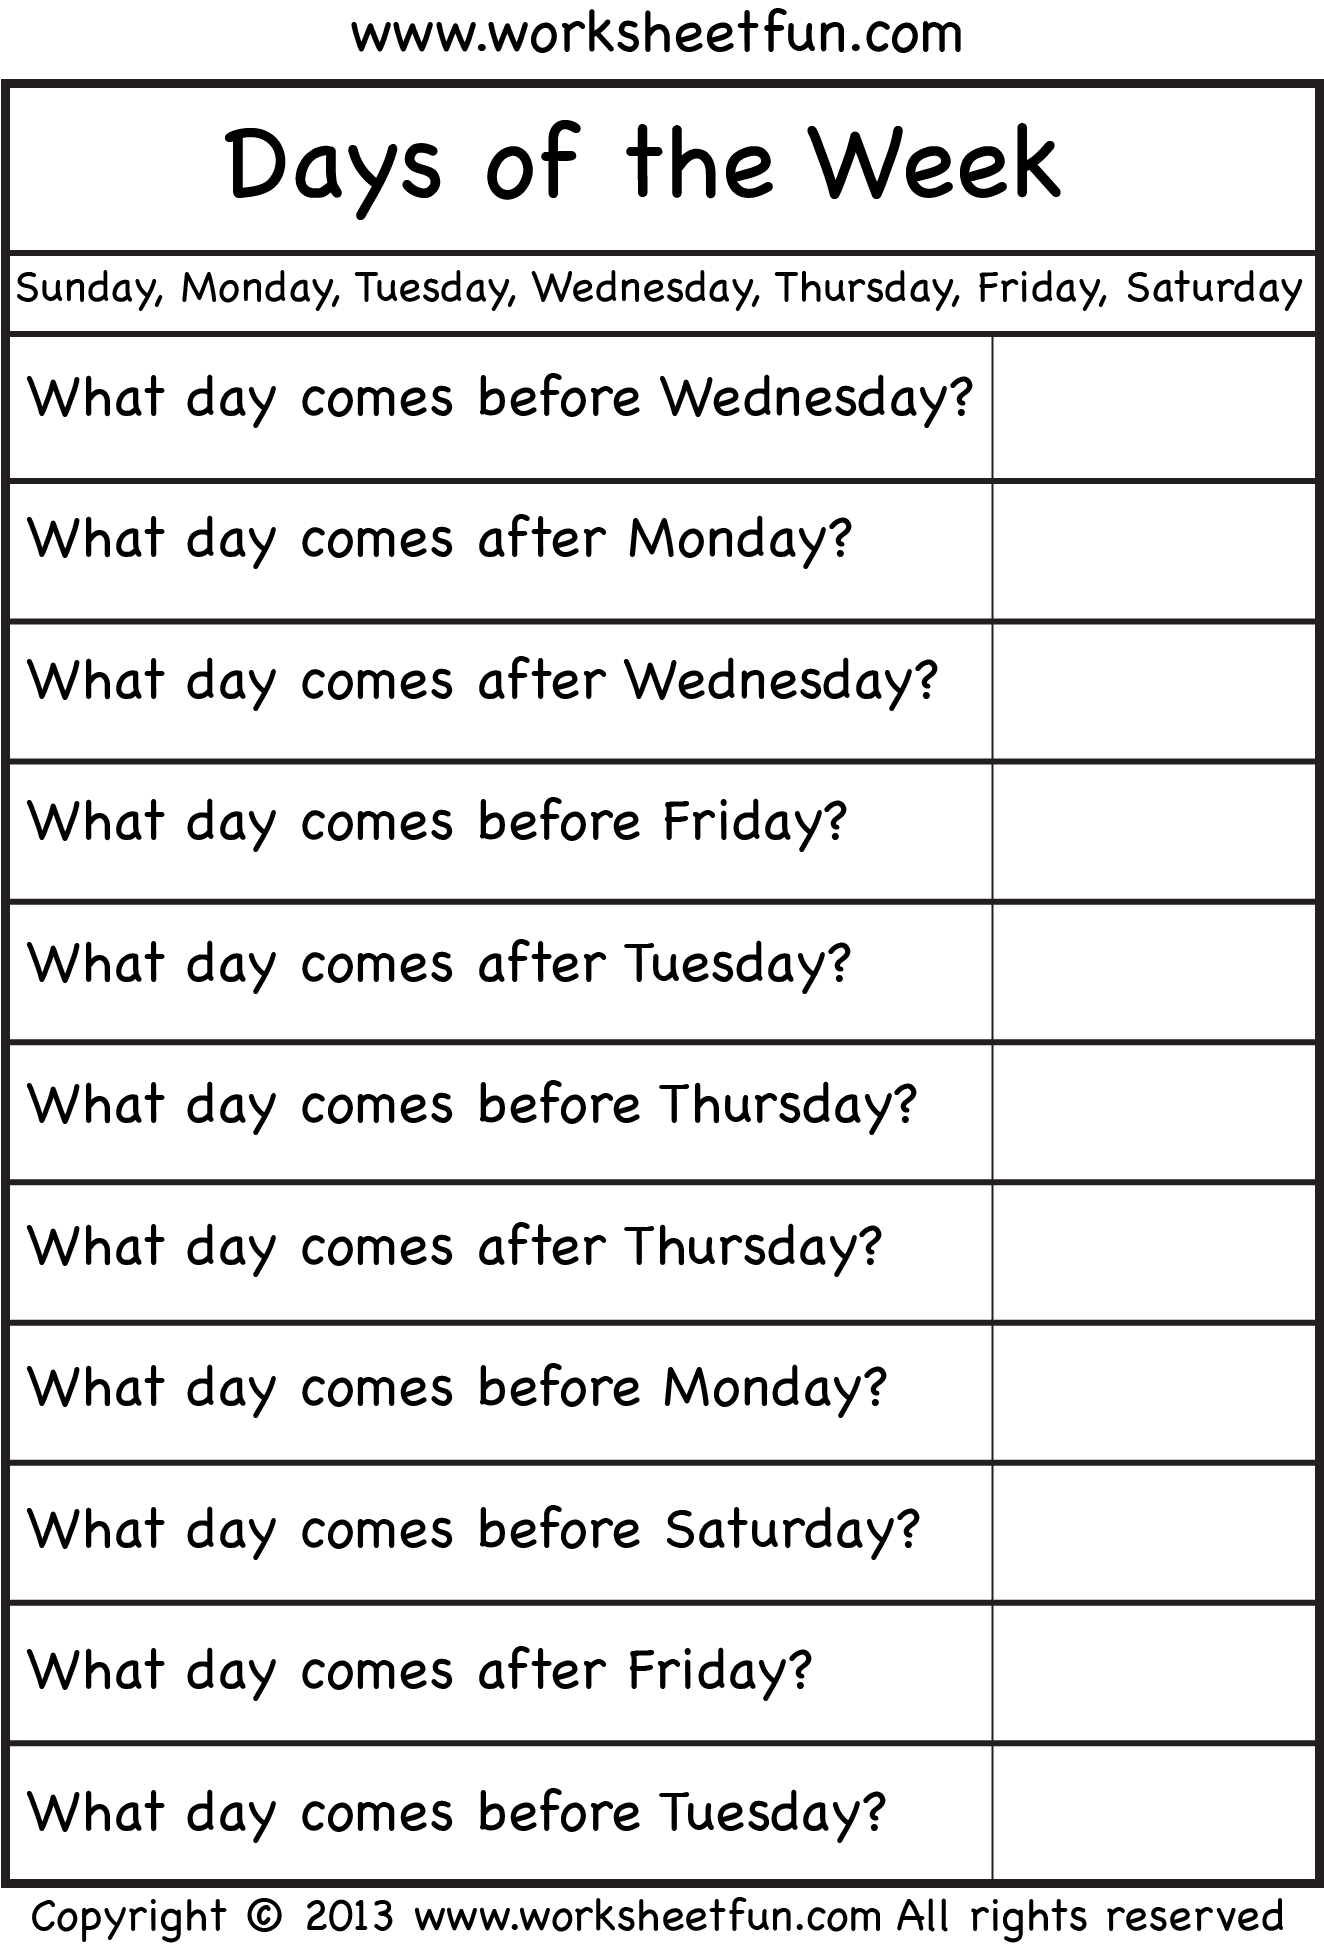 Days Of The Week With Images